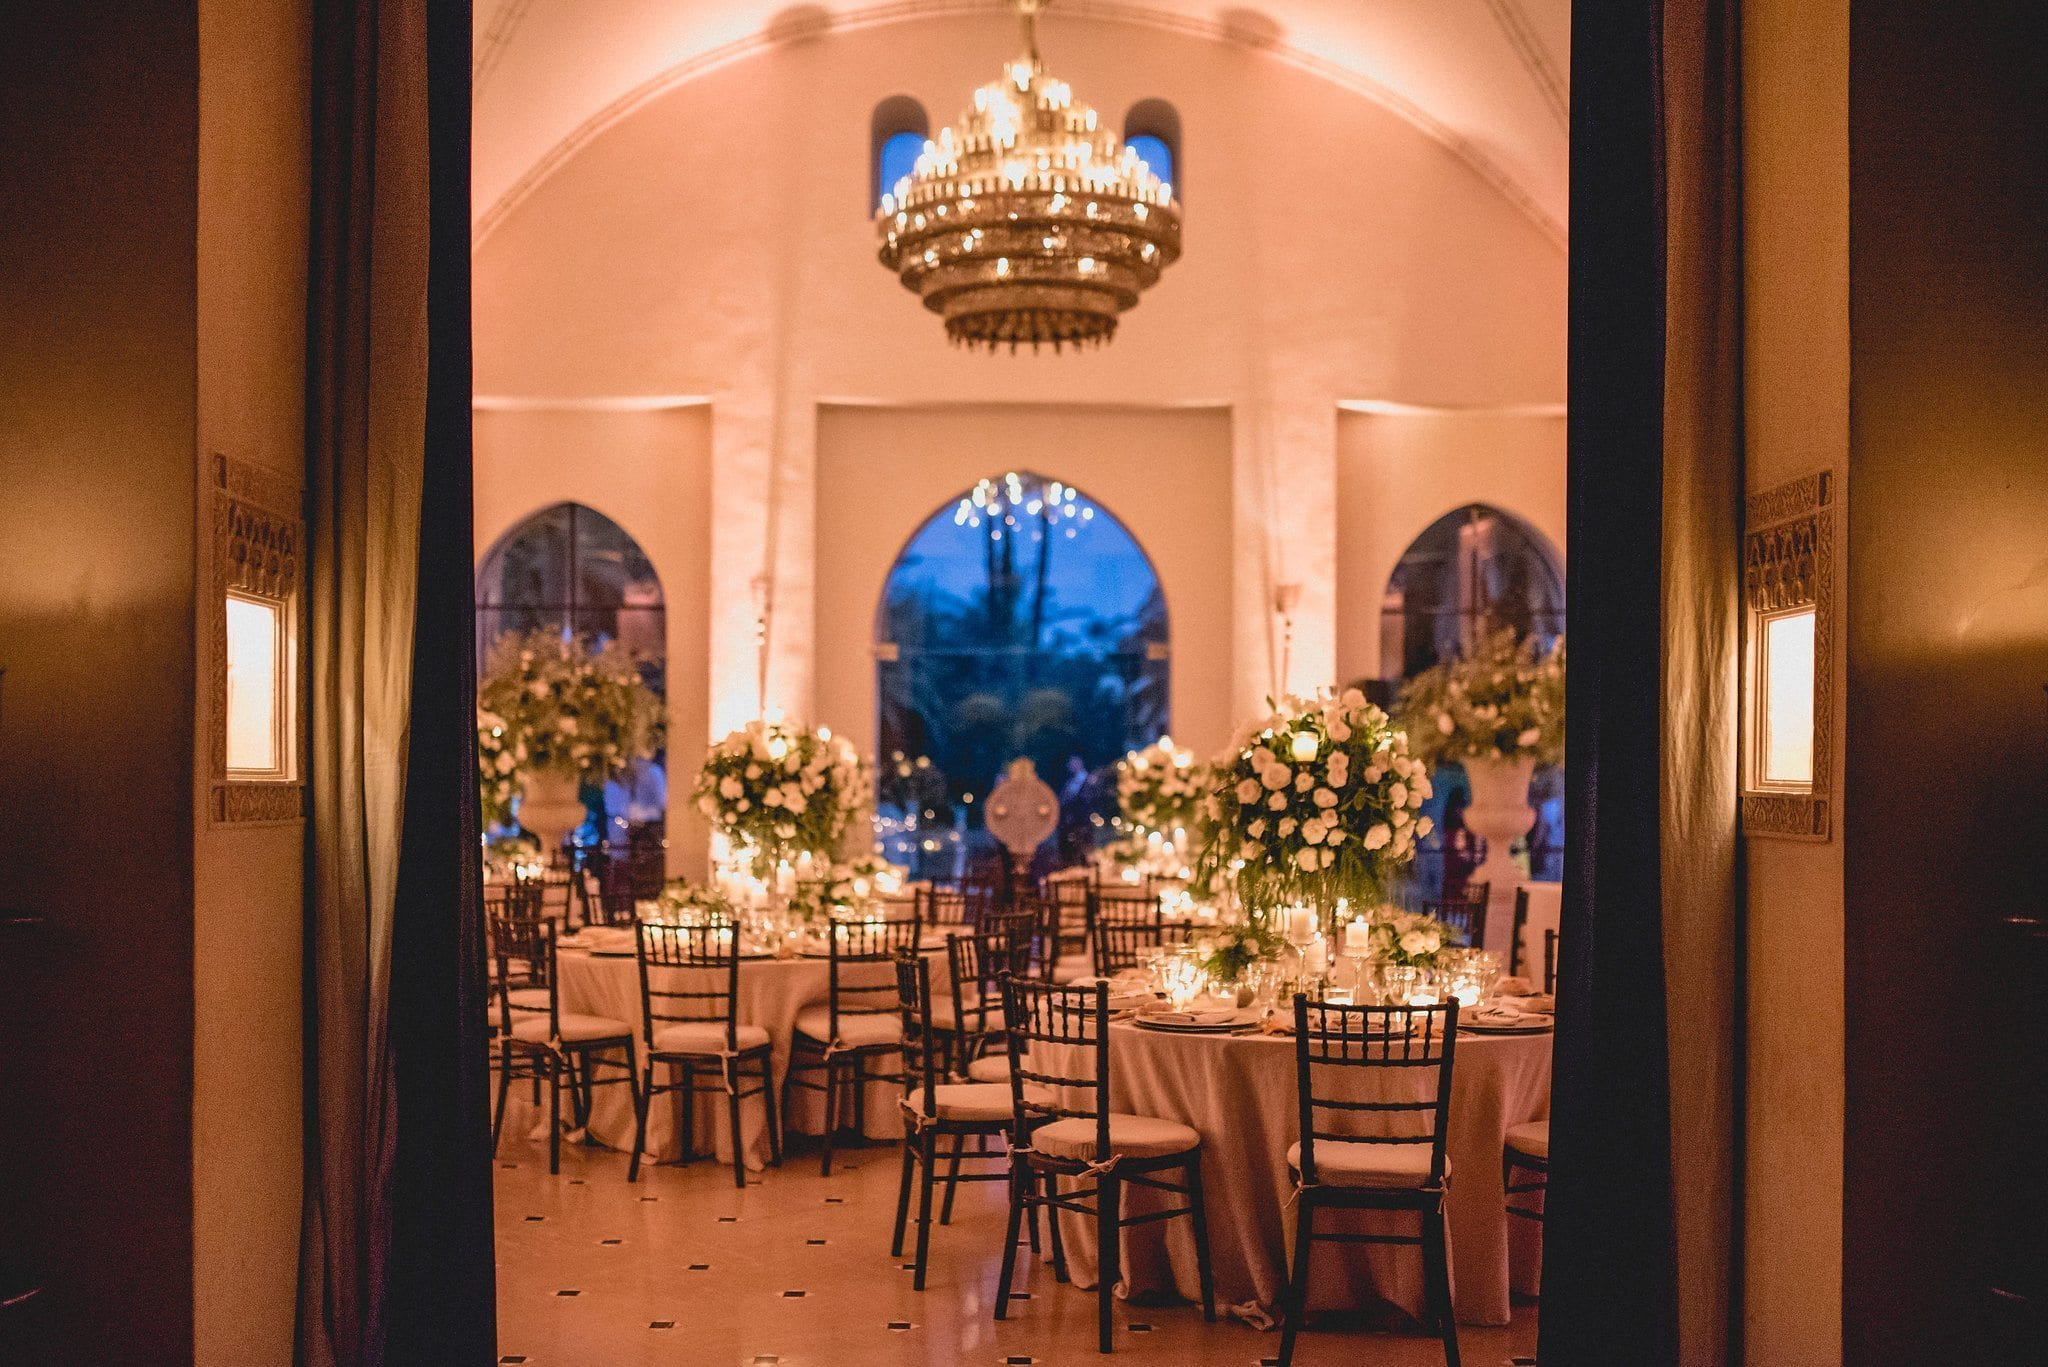 Ksar Char Bagh dining hall decorated with candles and local flowers for a destination wedding